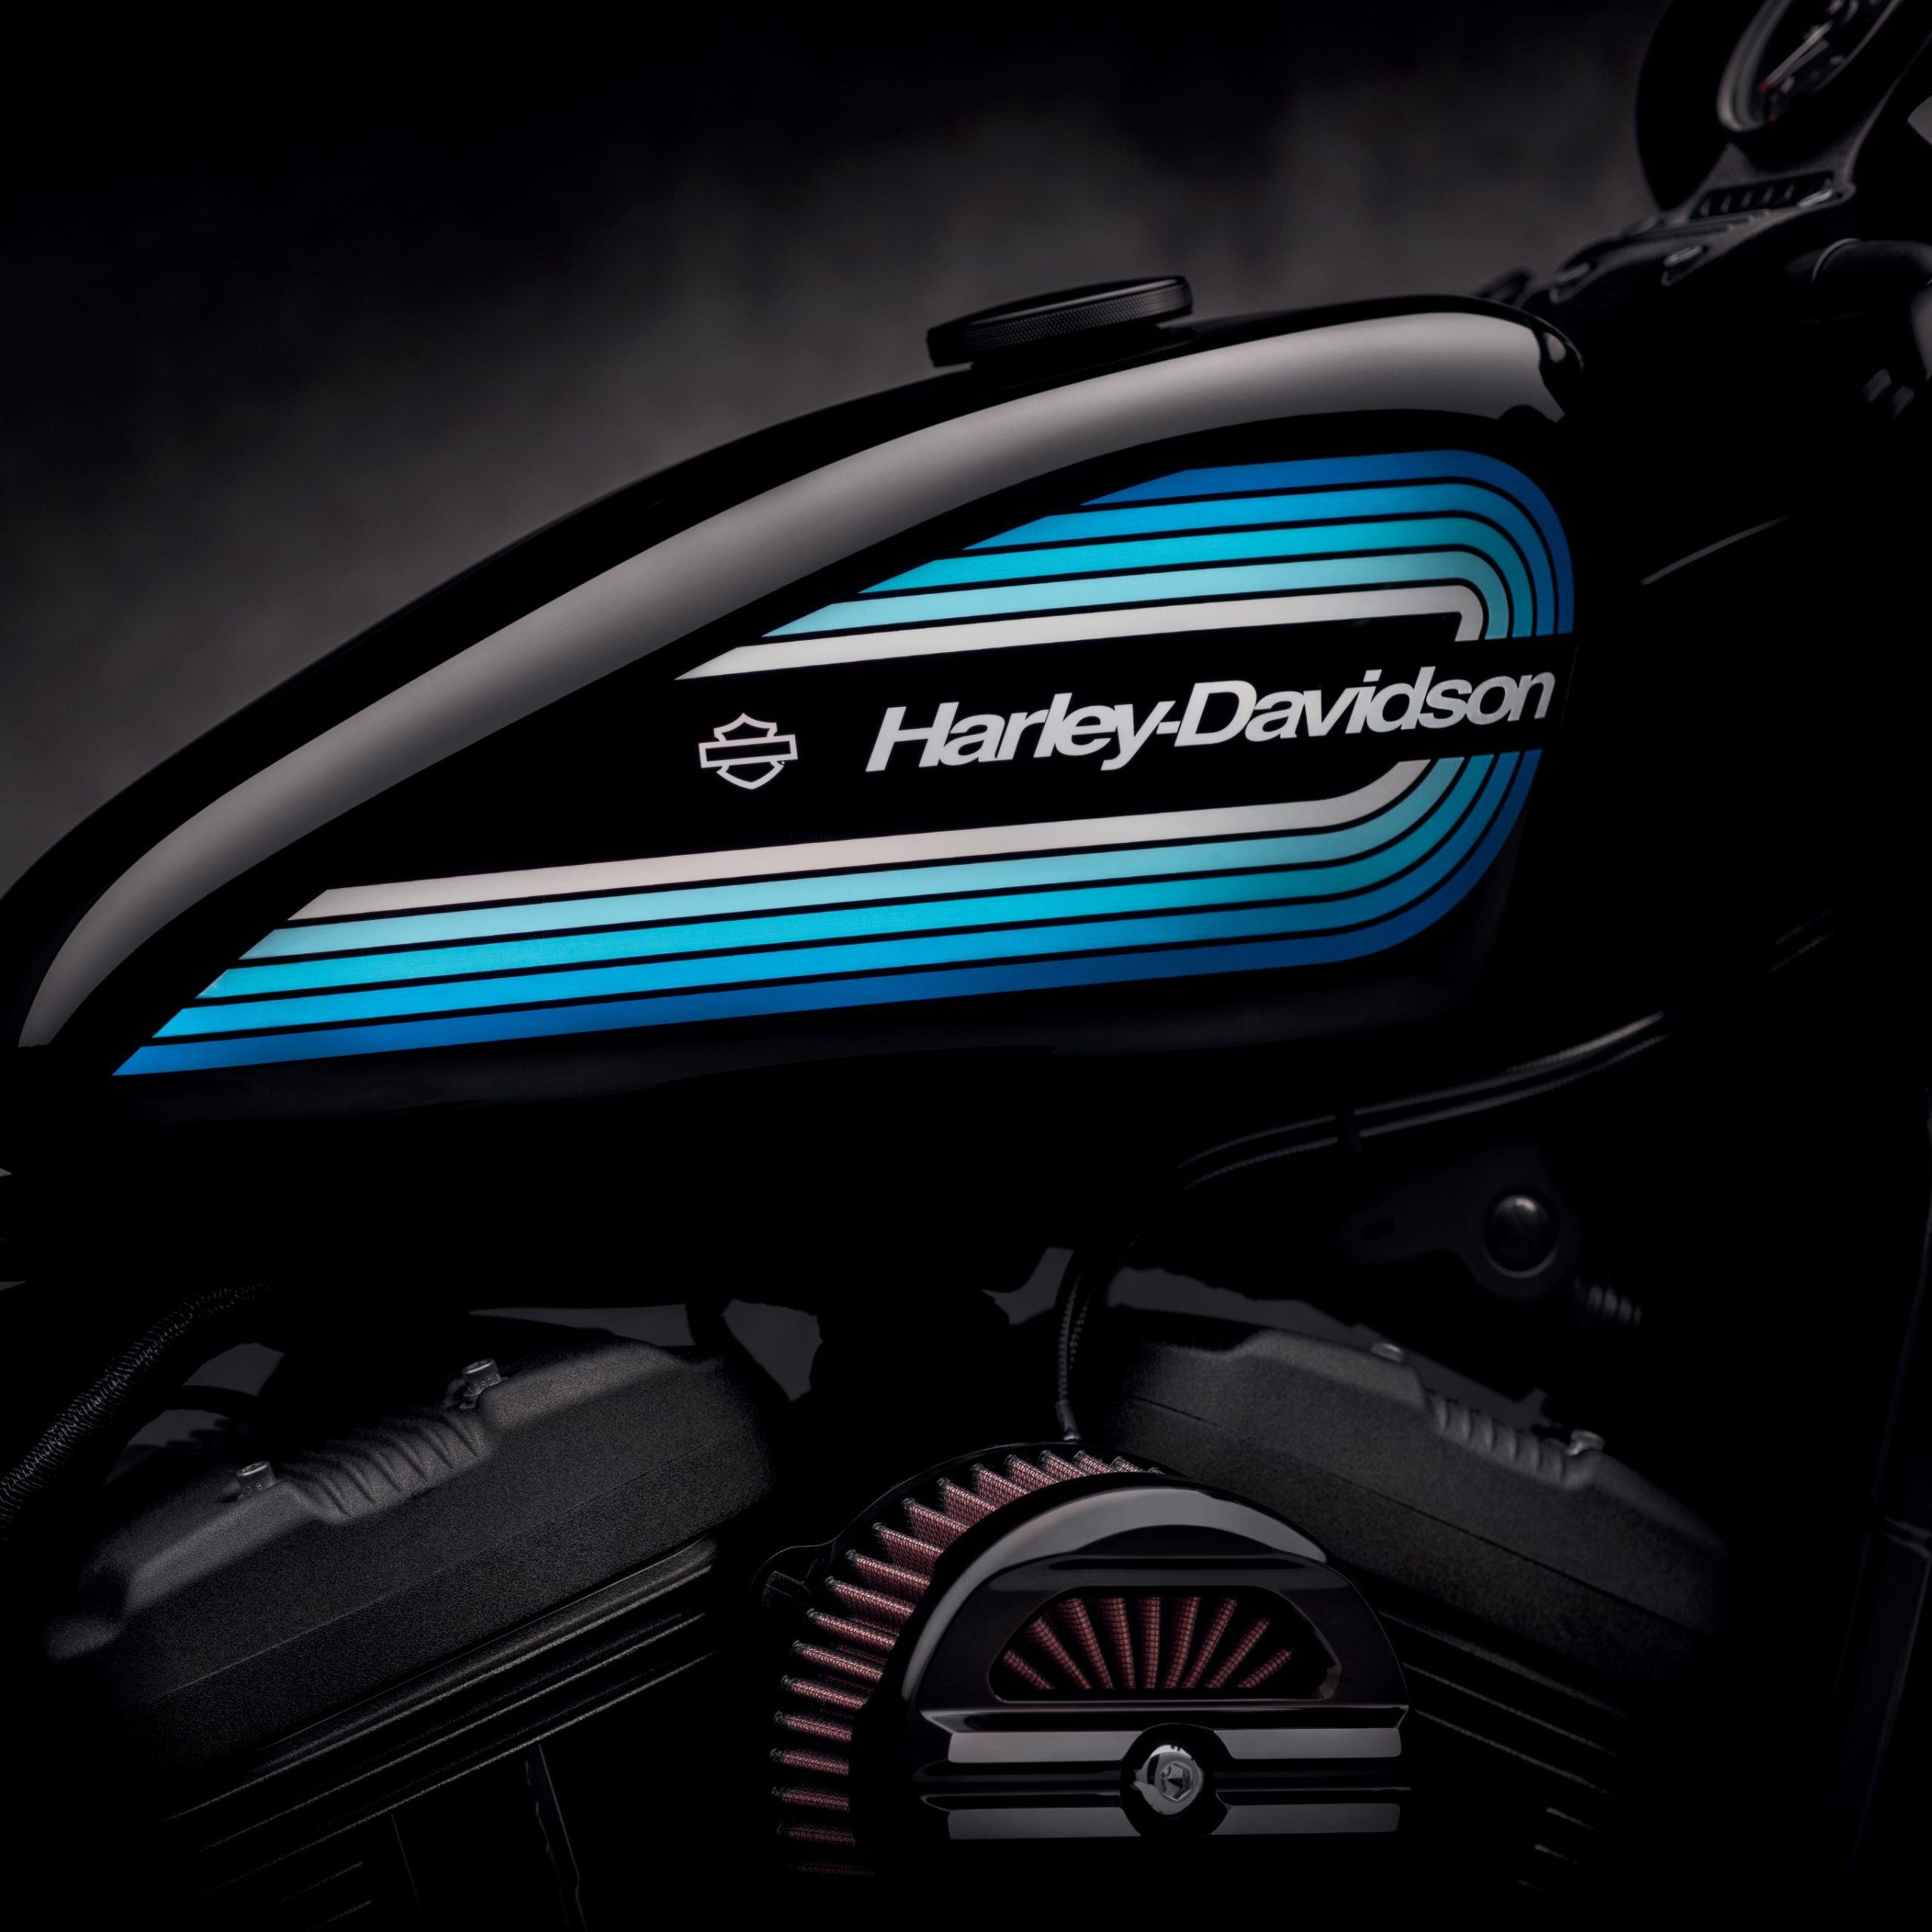 harley davidson motorcycle blue black background closeup 5k 2387